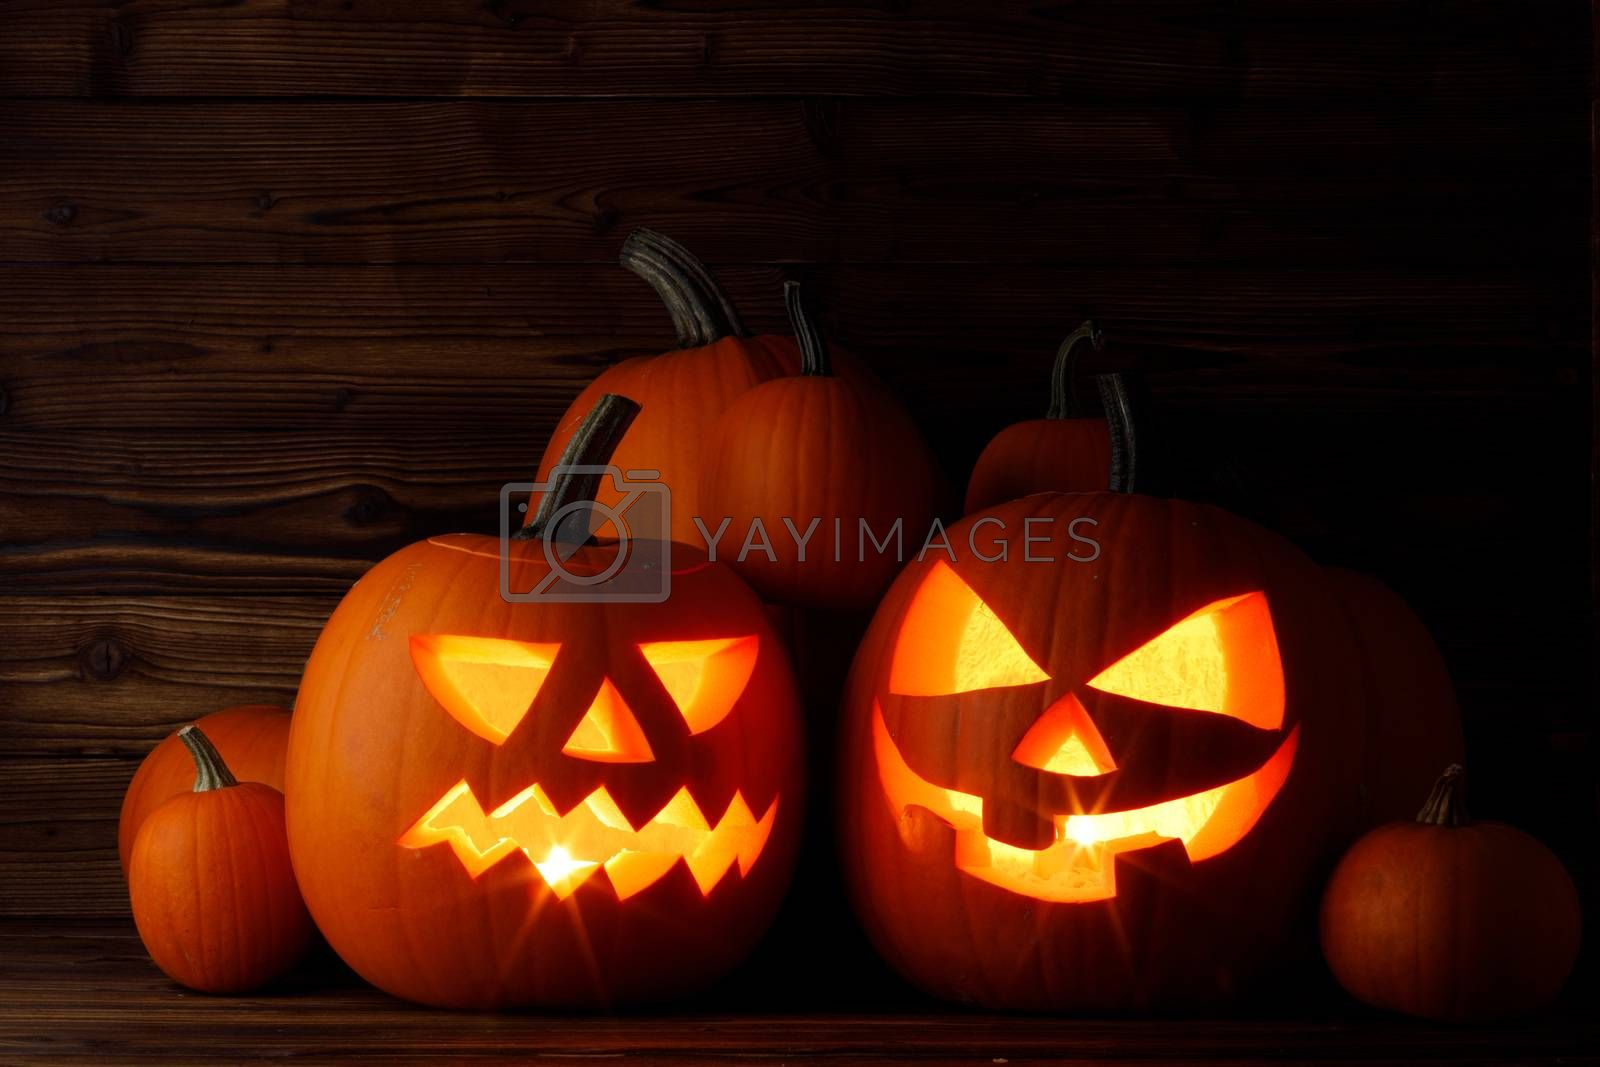 Halloween pumpkin head lanterns and burning candles on wooden background